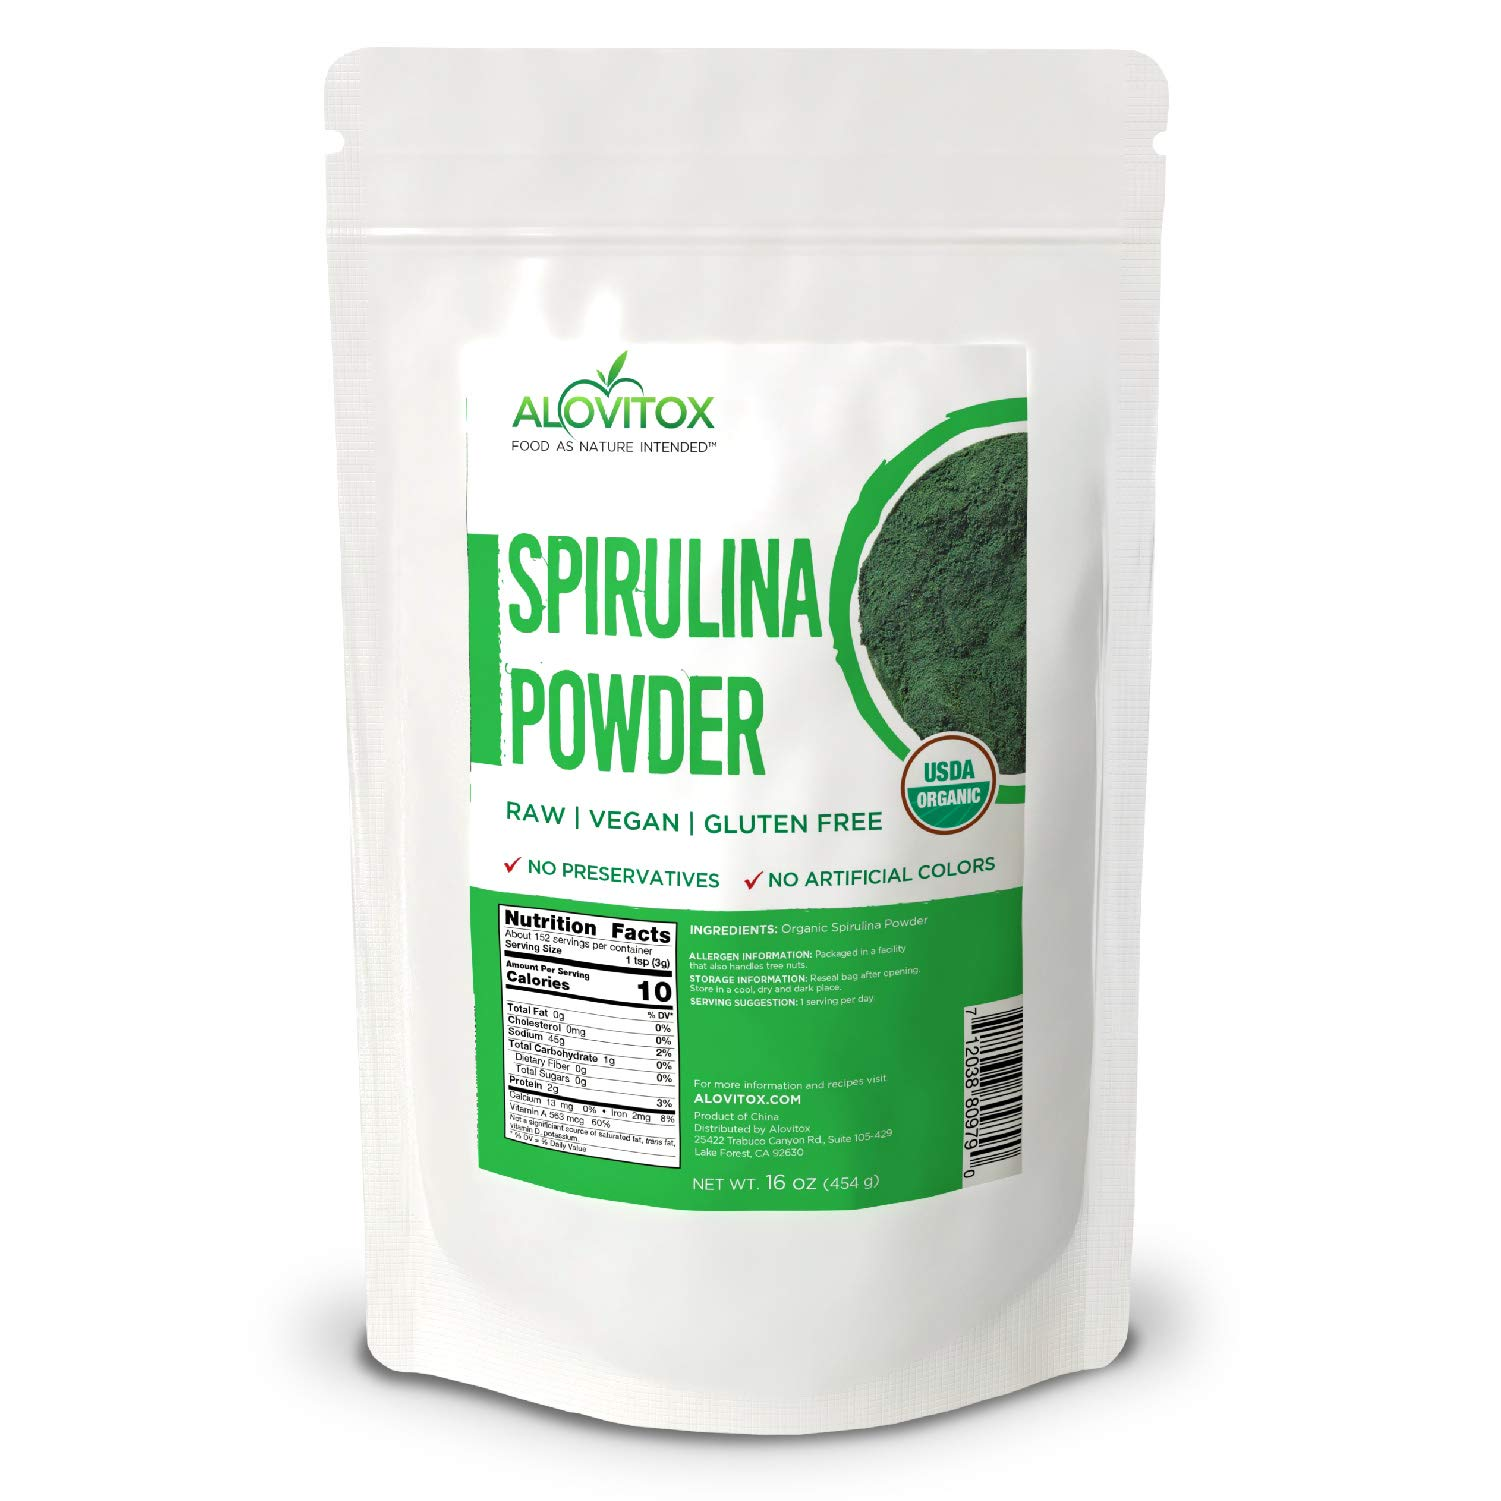 Organic Spirulina Powder | Nutrient Dense Superfood with Antioxidants, Proteins, Vitamin A and Bs,Fiber, Omegas 3, 6 and 9-100% Organic Spirulina Powder No Additives or Colors (1 Pound)